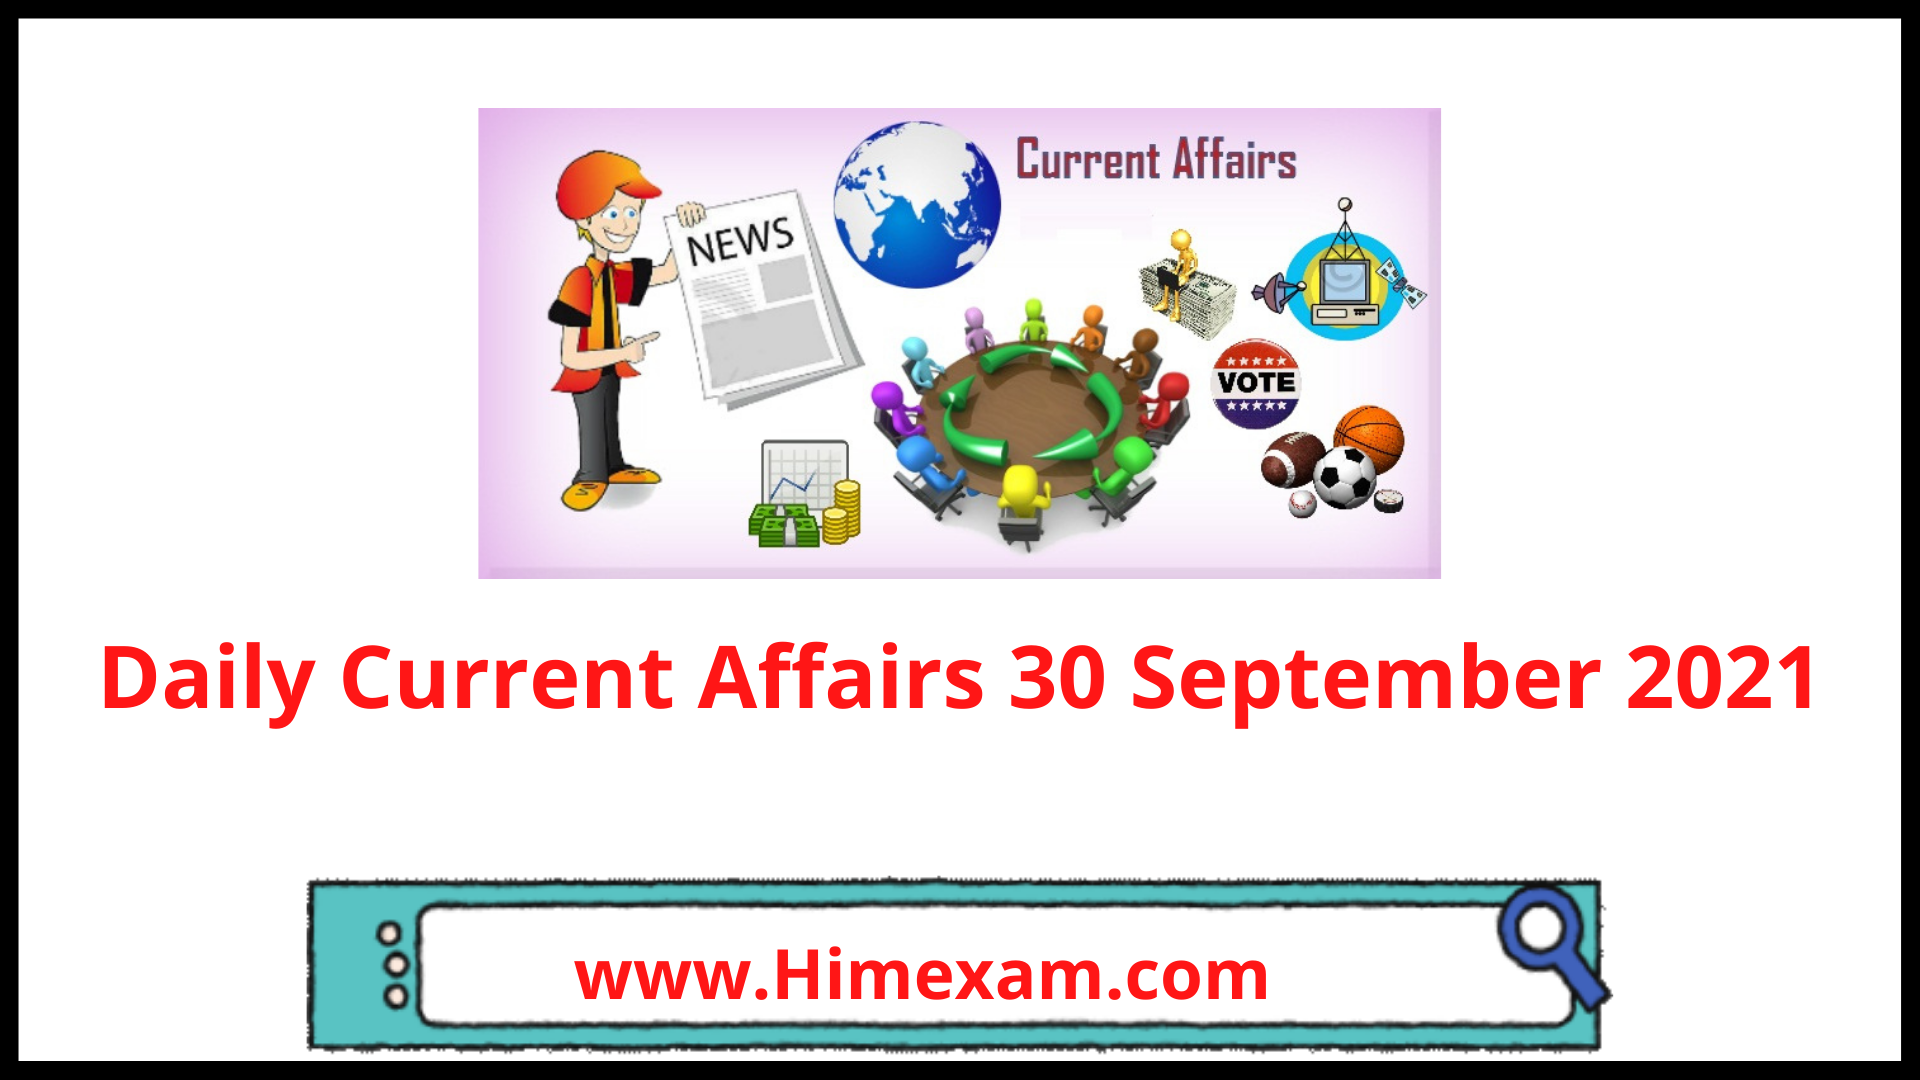 Daily Current Affairs 30 September 2021